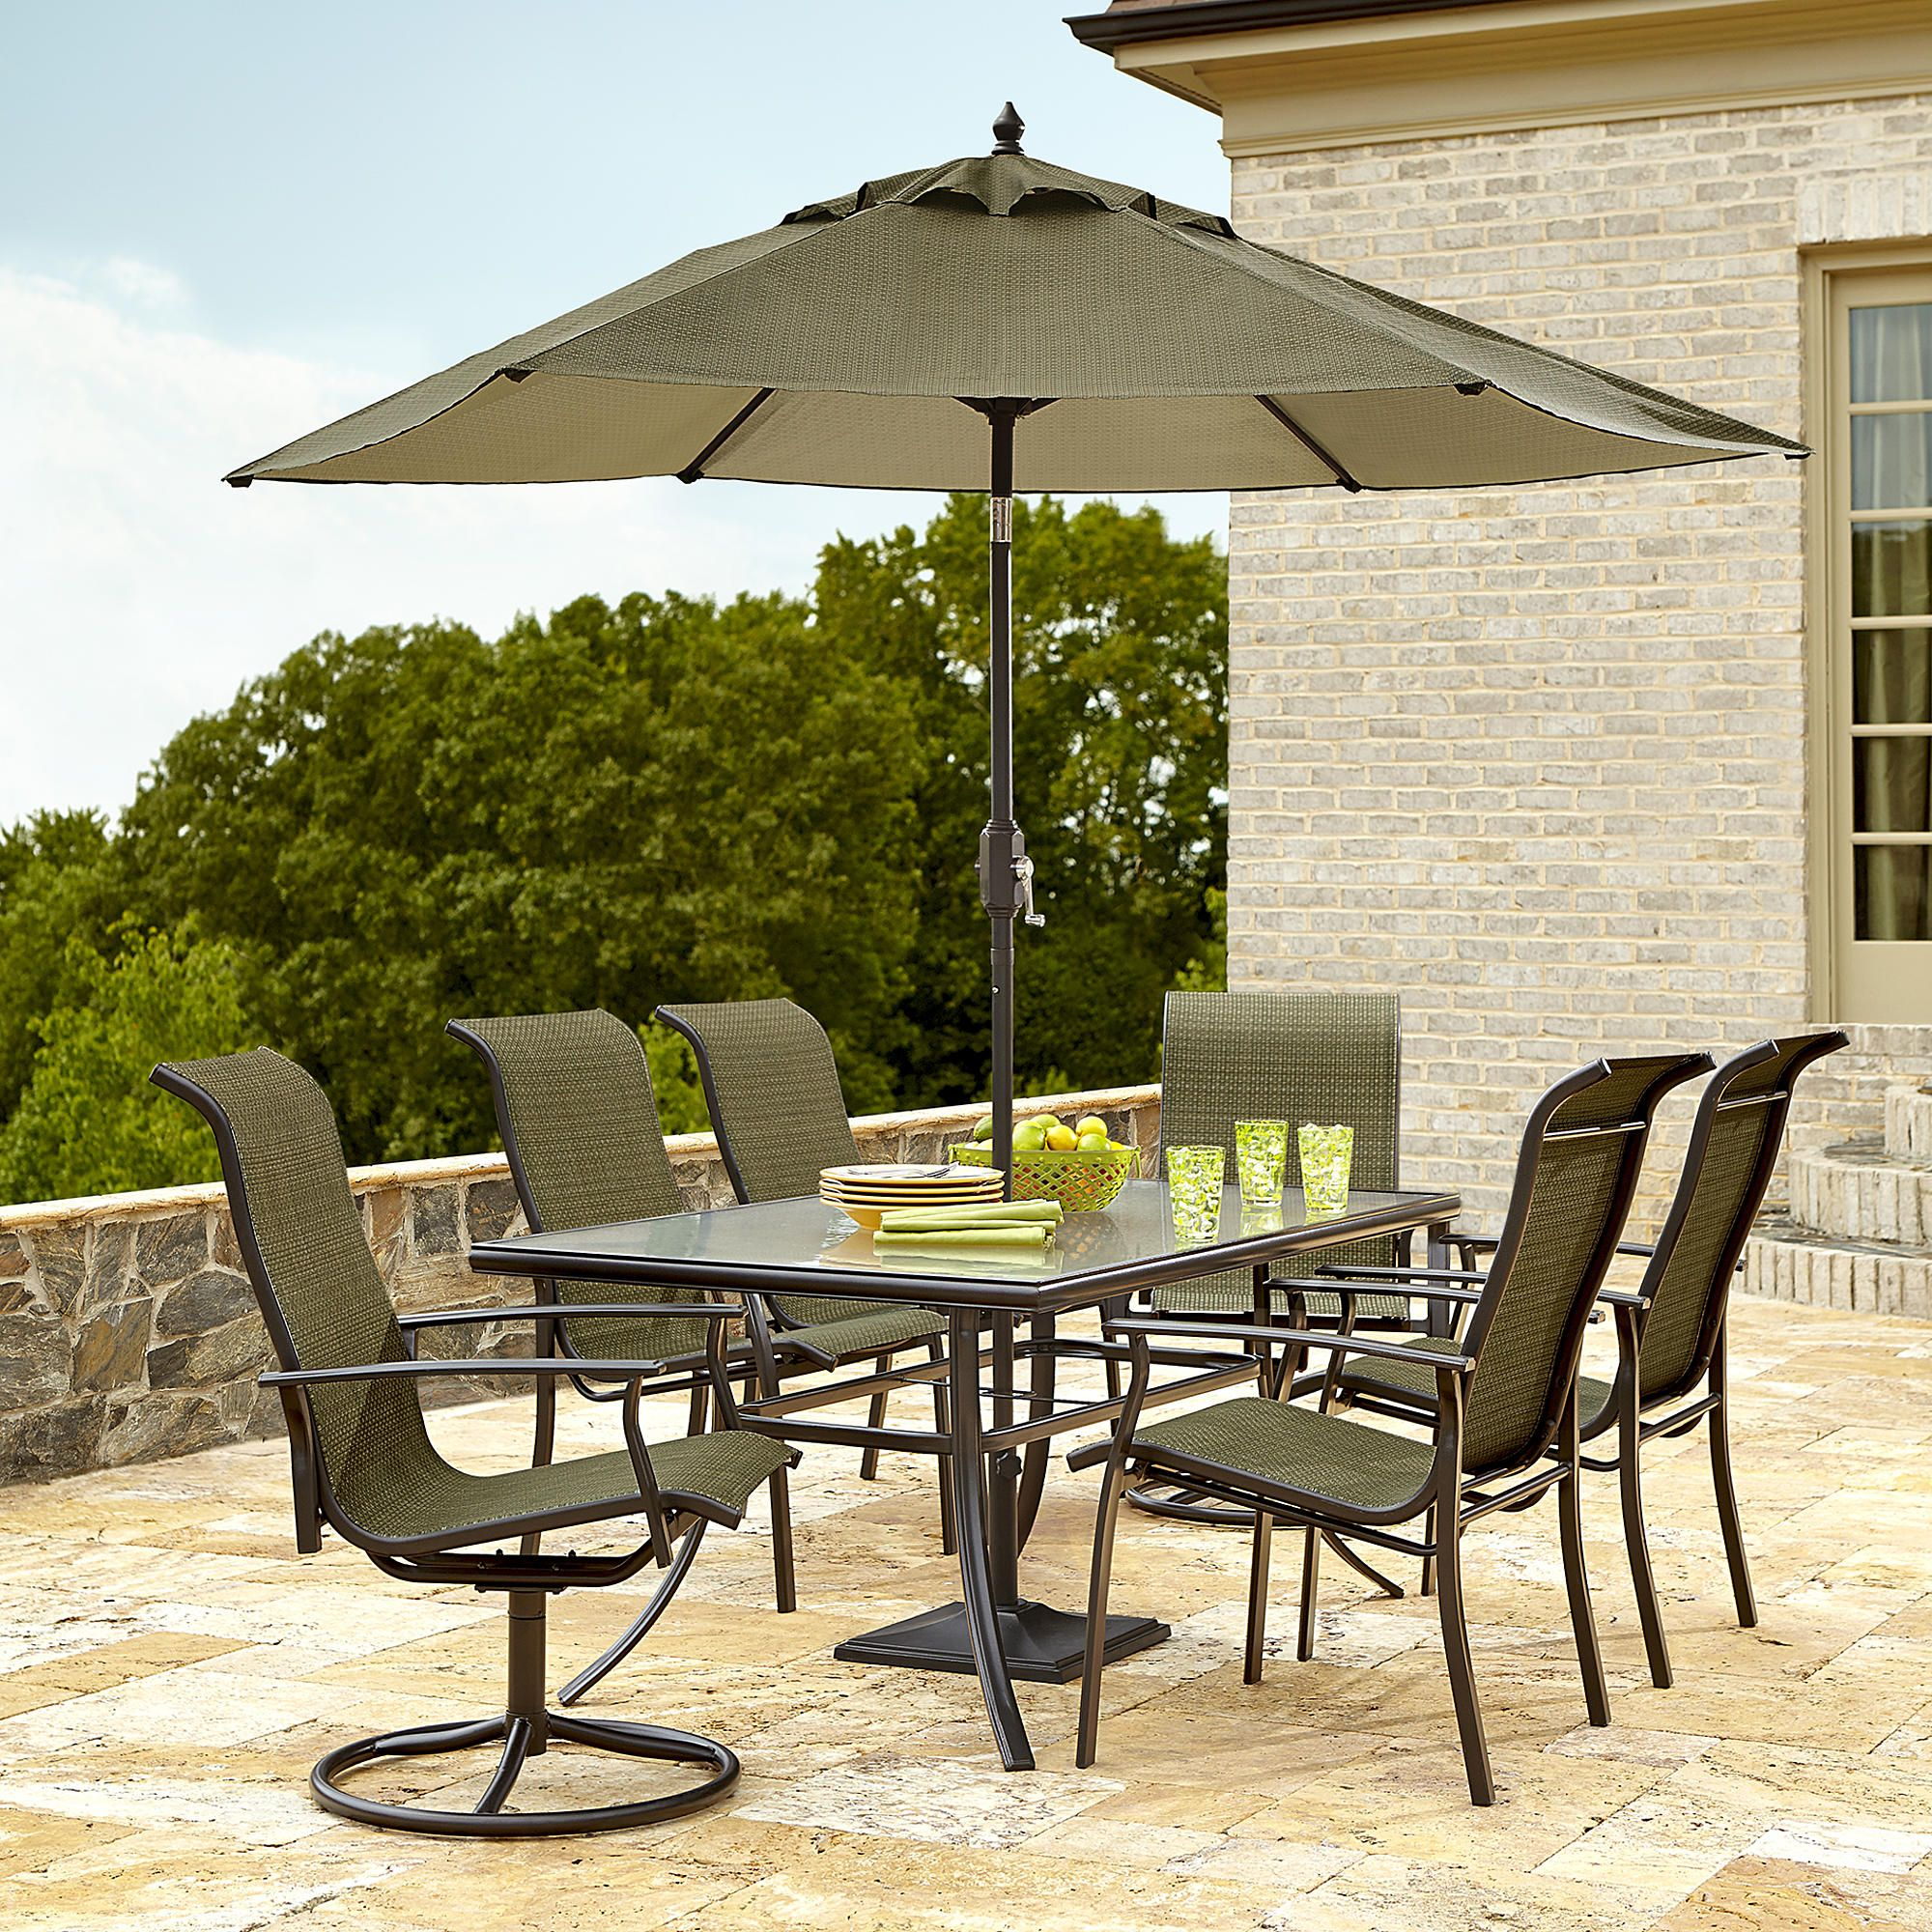 Escape To The Great Outdoors With The Garden Oasis Harrison